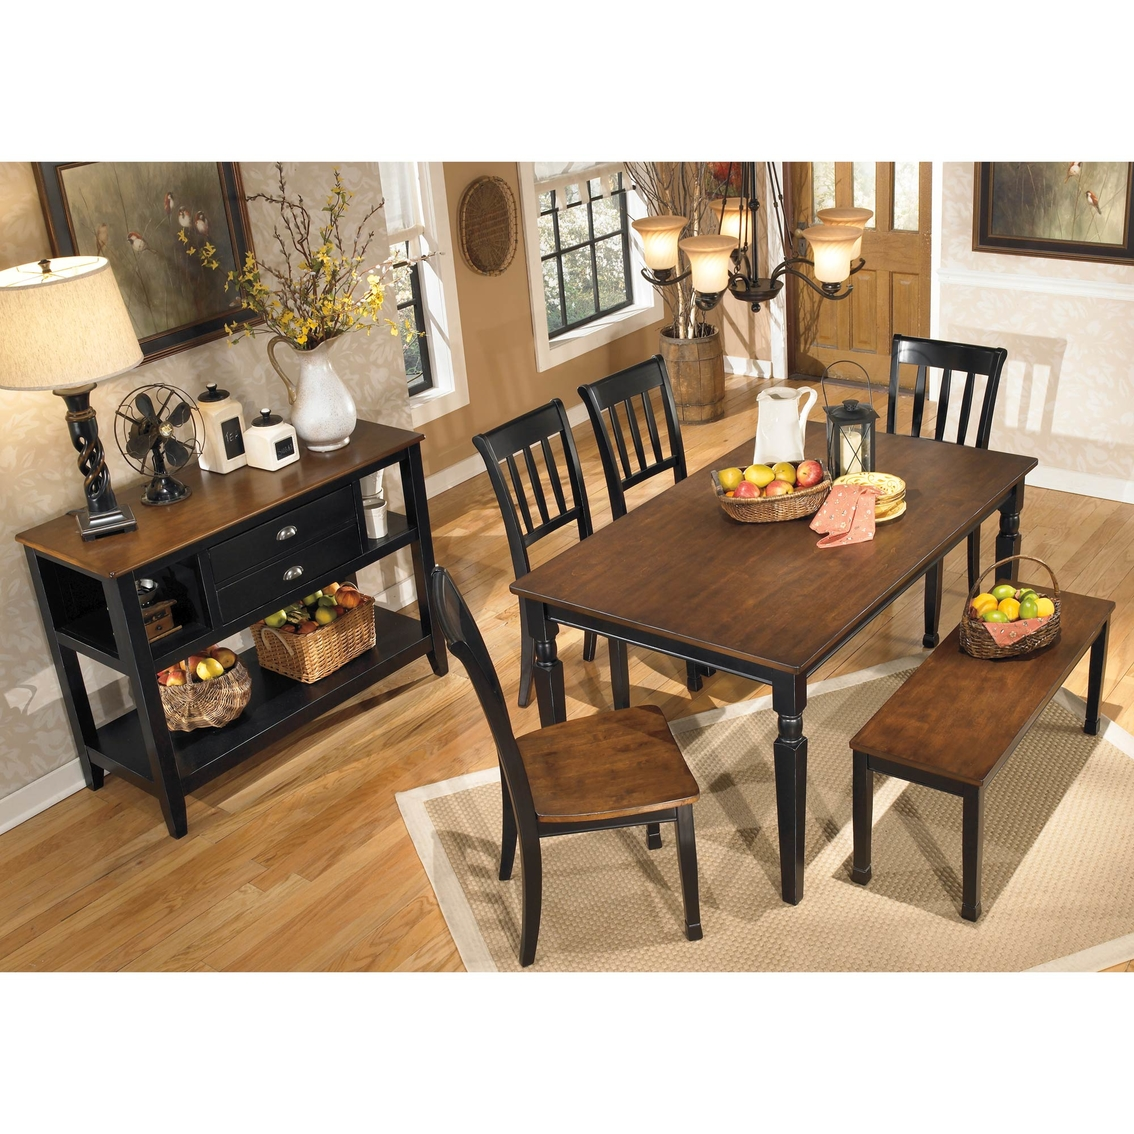 Signature Design By Ashley Owingsville 6 Pc Dining Set Dining Sets Furniture Appliances Shop The Exchange